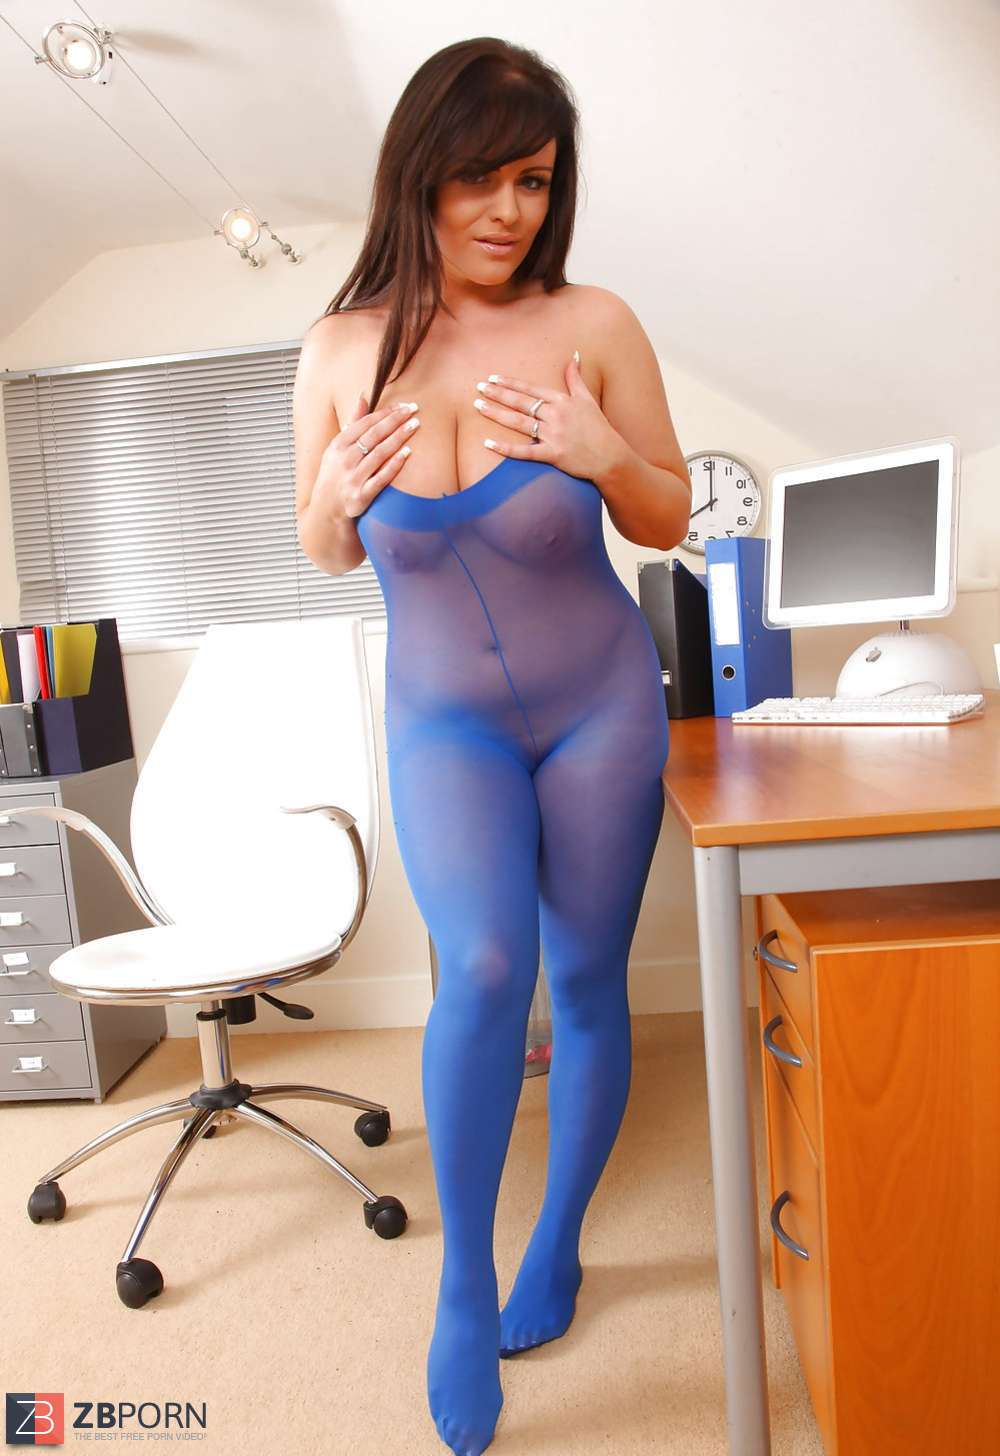 nude pics husbands and wifes